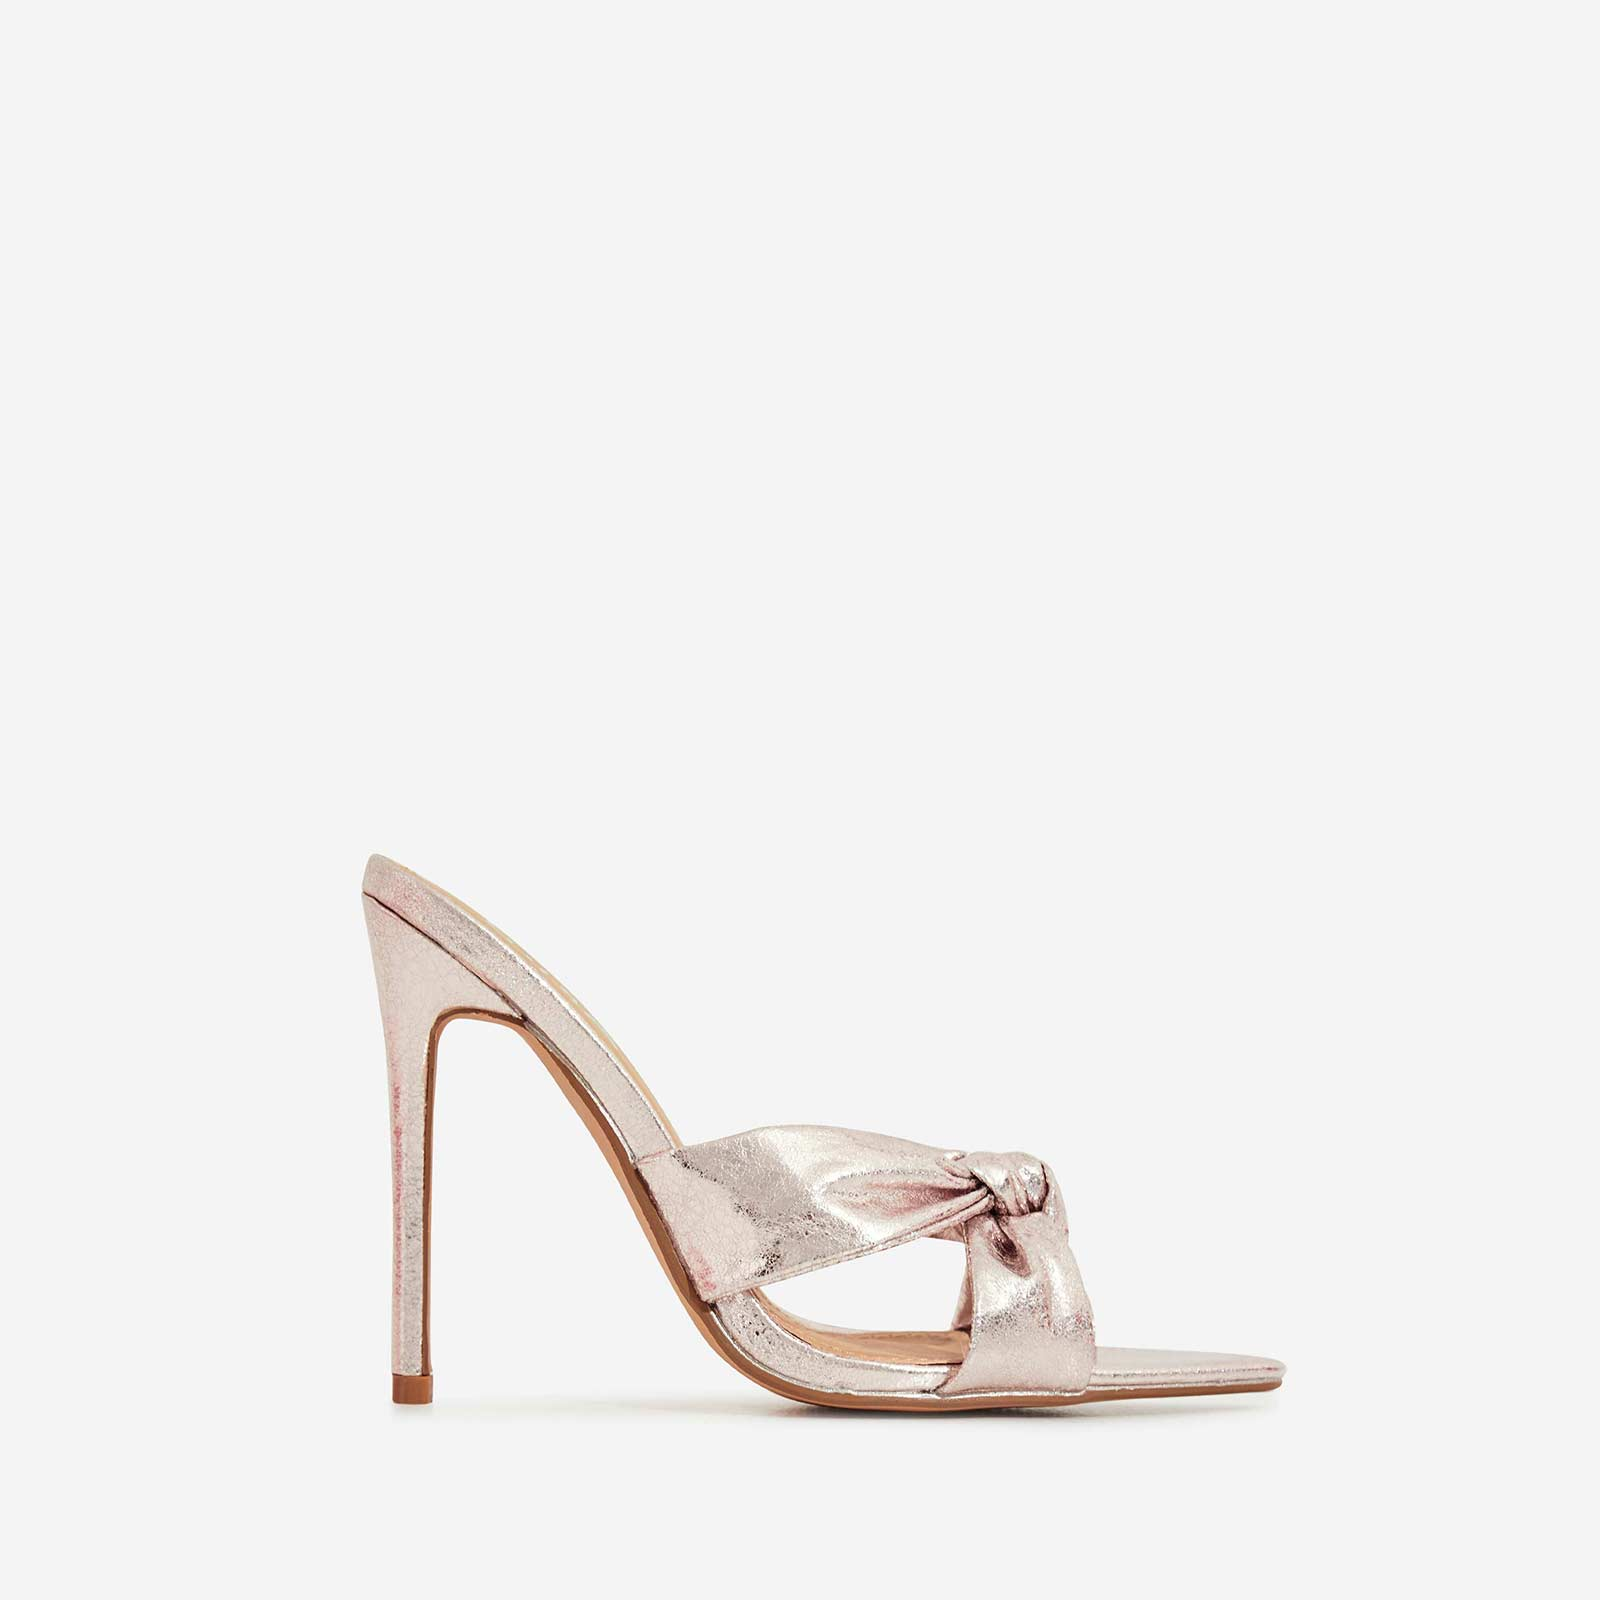 Saska Knot Detail Pointed Peep Toe Heel Mule In Rose Gold Faux Leather